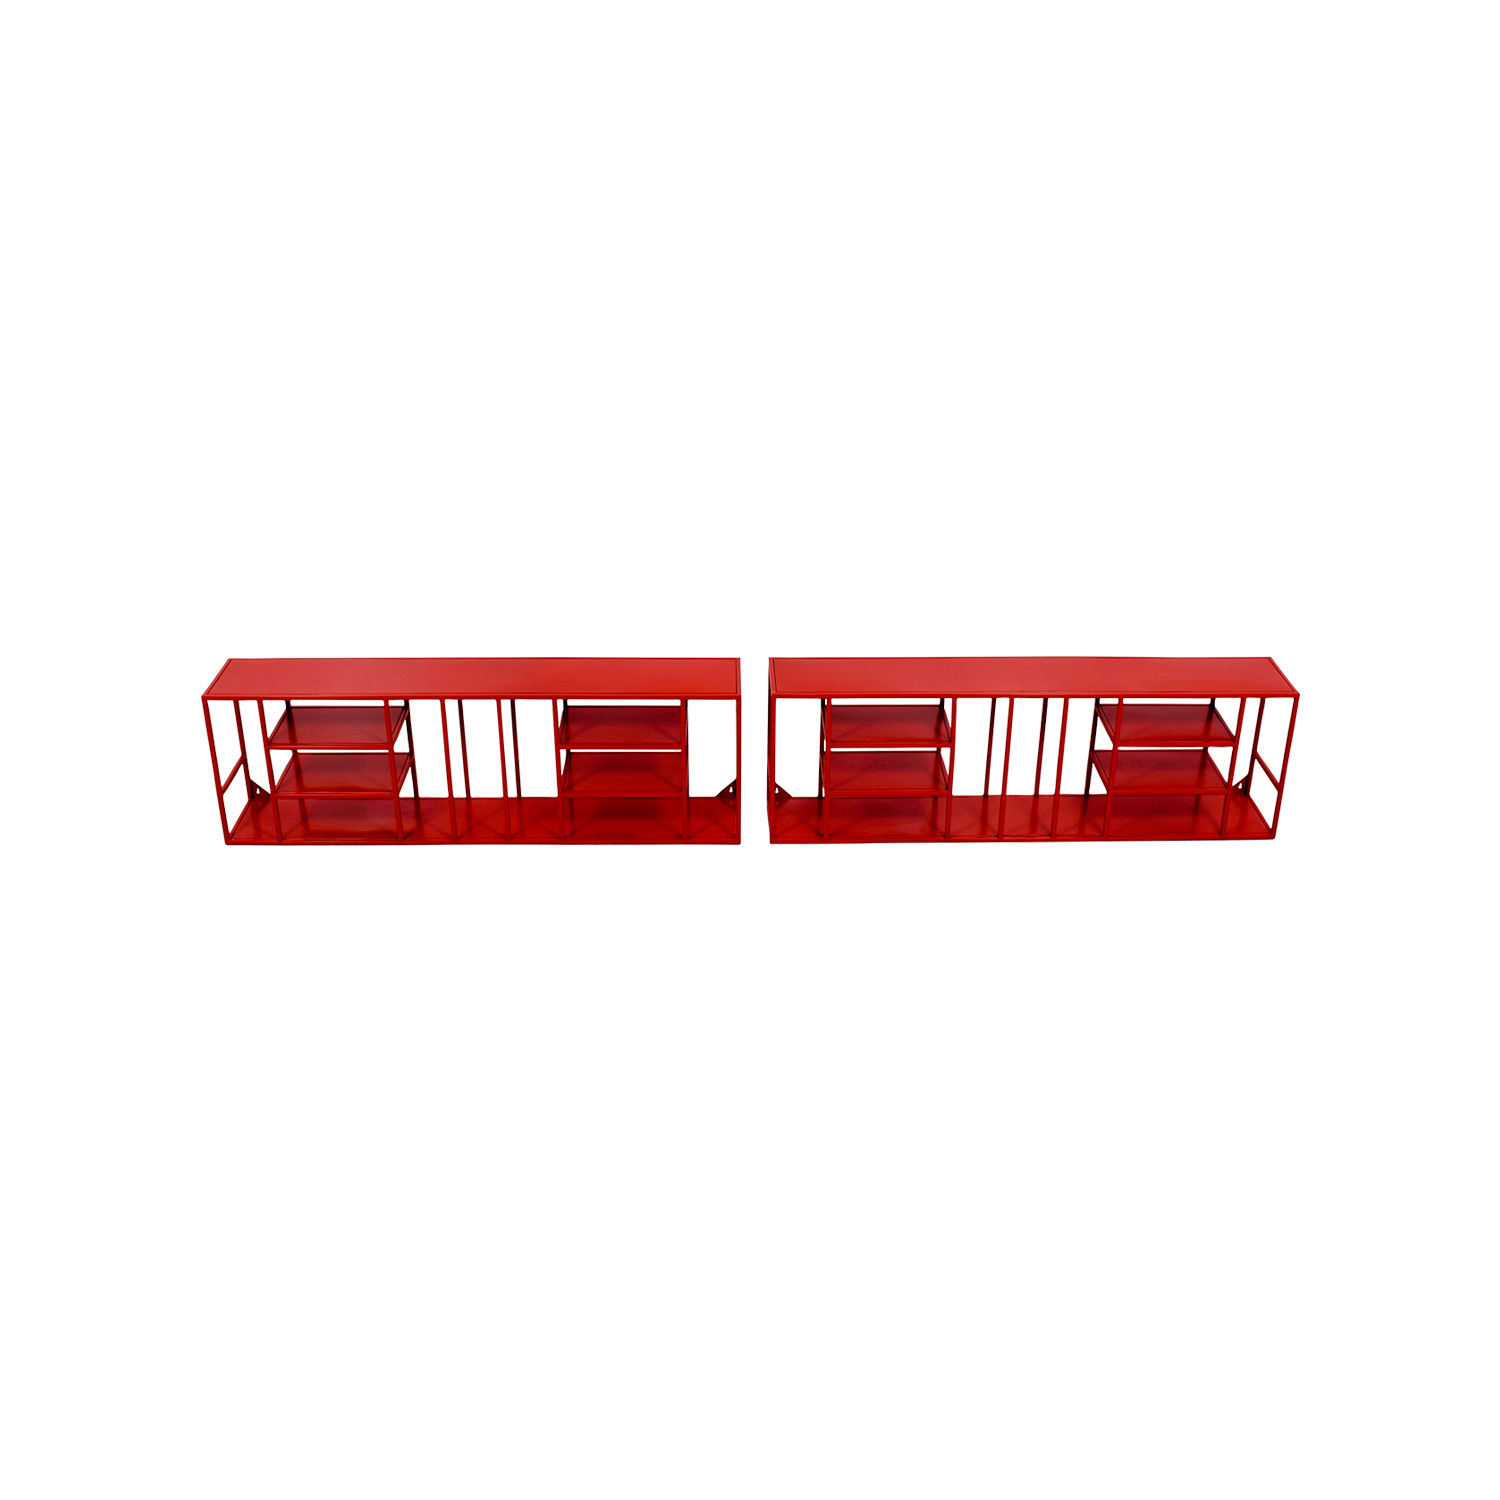 Sensational 56 Off Cb2 Cb2 Red Metal Bookshelves Storage Interior Design Ideas Clesiryabchikinfo